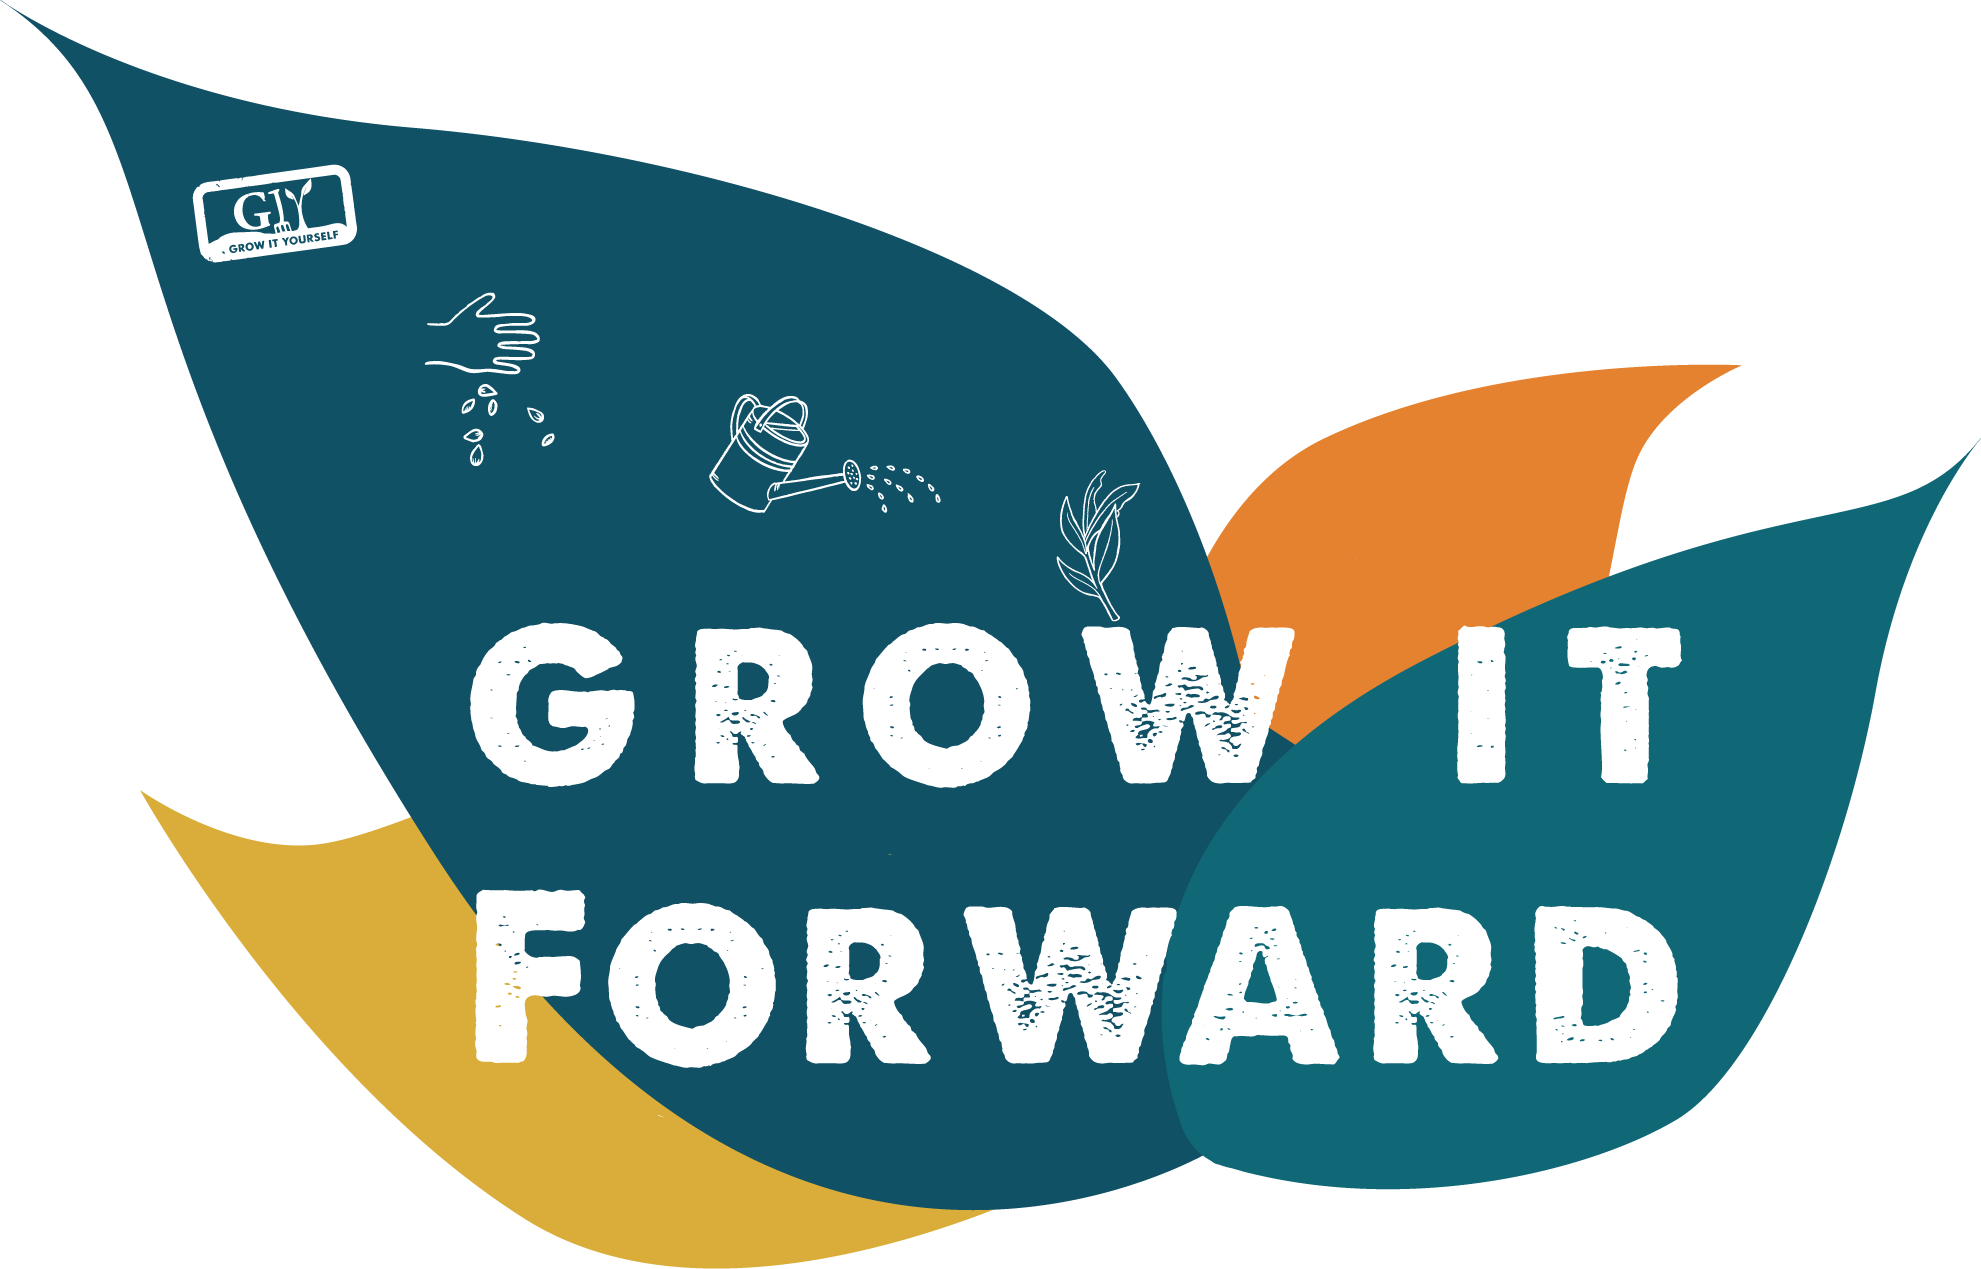 GrowItForwardLogo